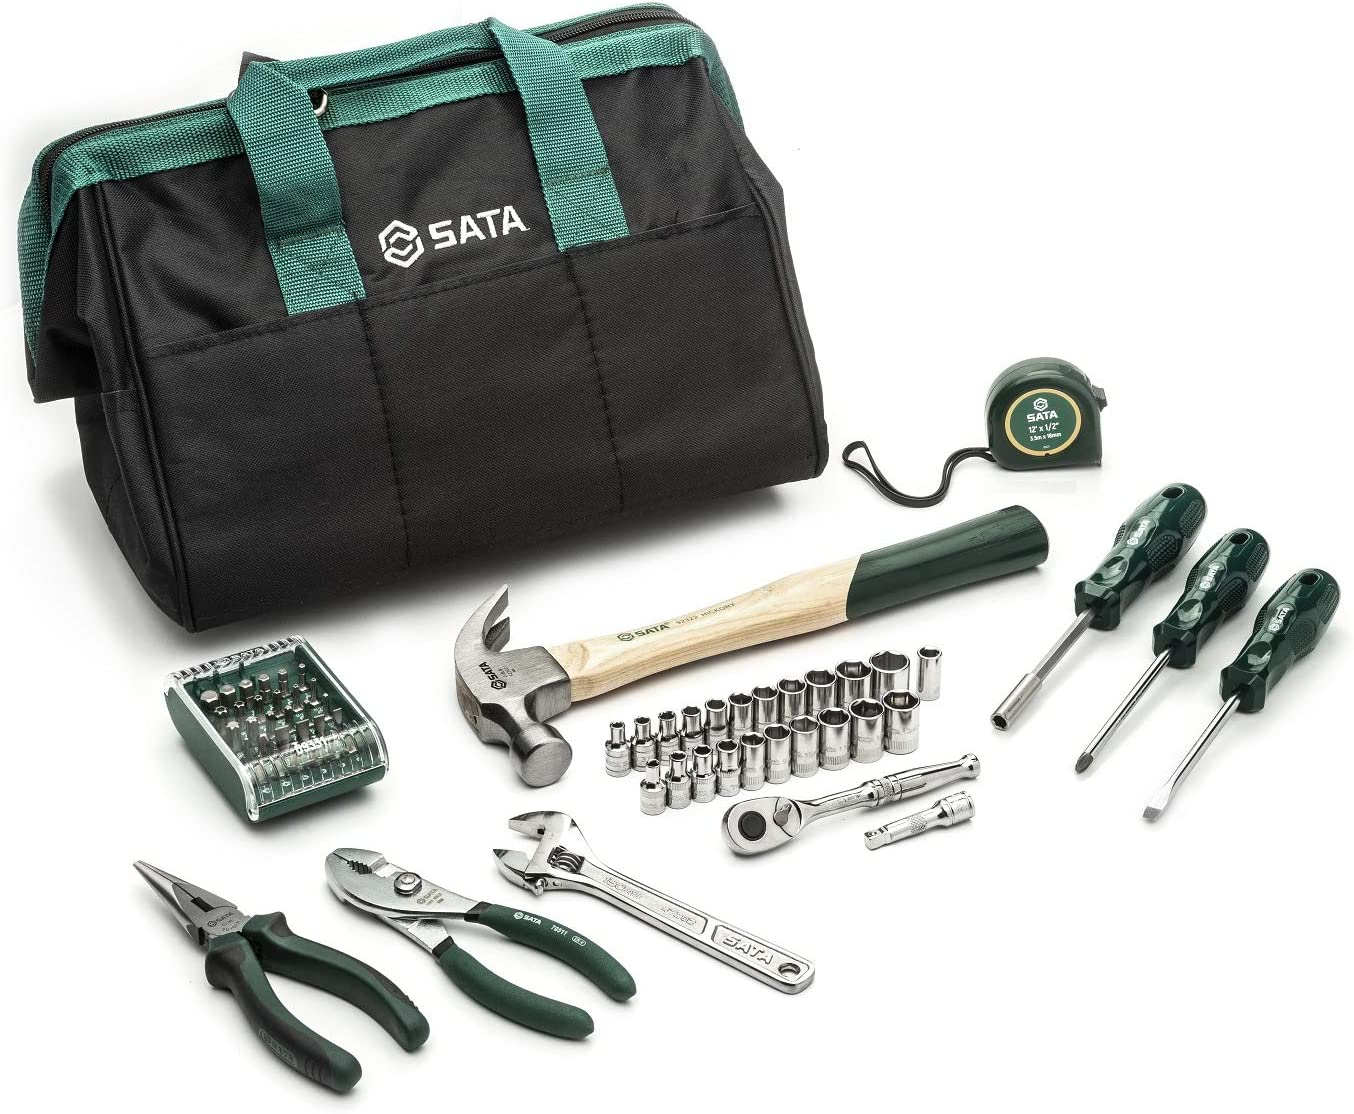 SATA 62-Piece General Purpose SAE and Metric Mechanic's Tool Set for Repair and DIY Projects with Durable Green Carrying and Storage Bag - ST09513U